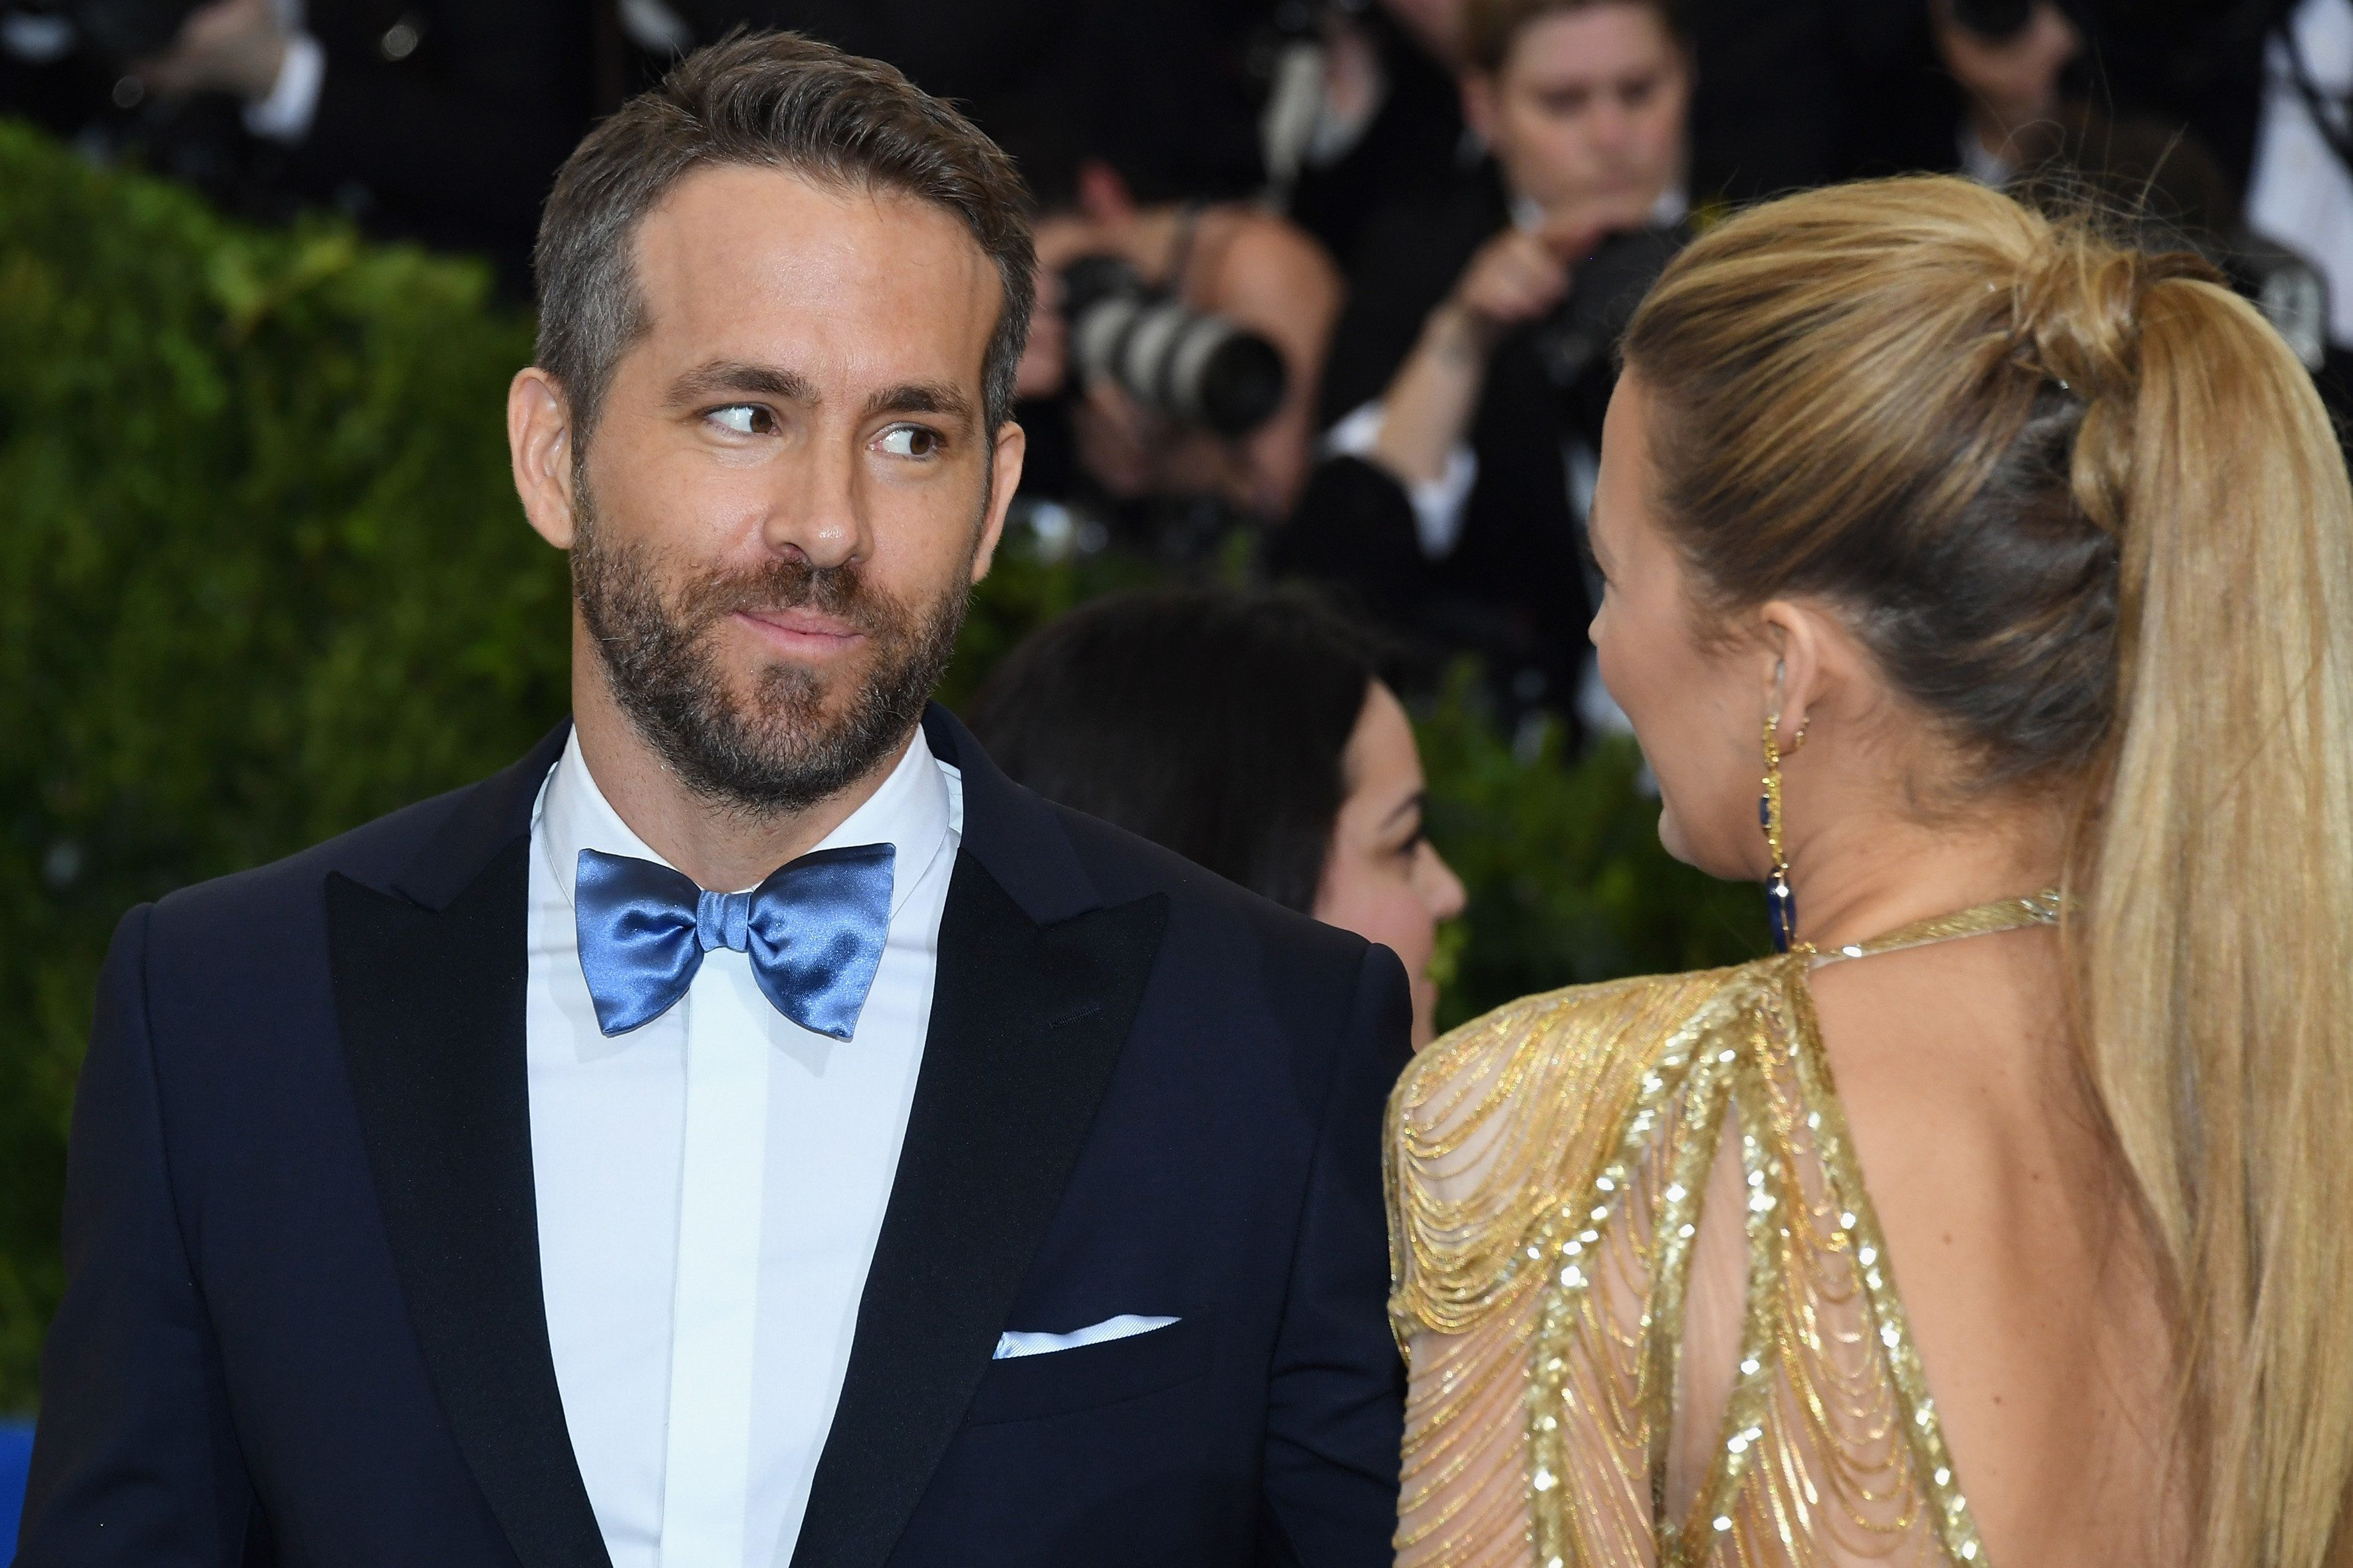 NEW YORK, NY - MAY 01:  Ryan Reynolds (L) and Blake Lively attend the 'Rei Kawakubo/Comme des Garcons: Art Of The In-Between' Costume Institute Gala at Metropolitan Museum of Art on May 1, 2017 in New York City.  (Photo by Dia Dipasupil/Getty Images For Entertainment Weekly)